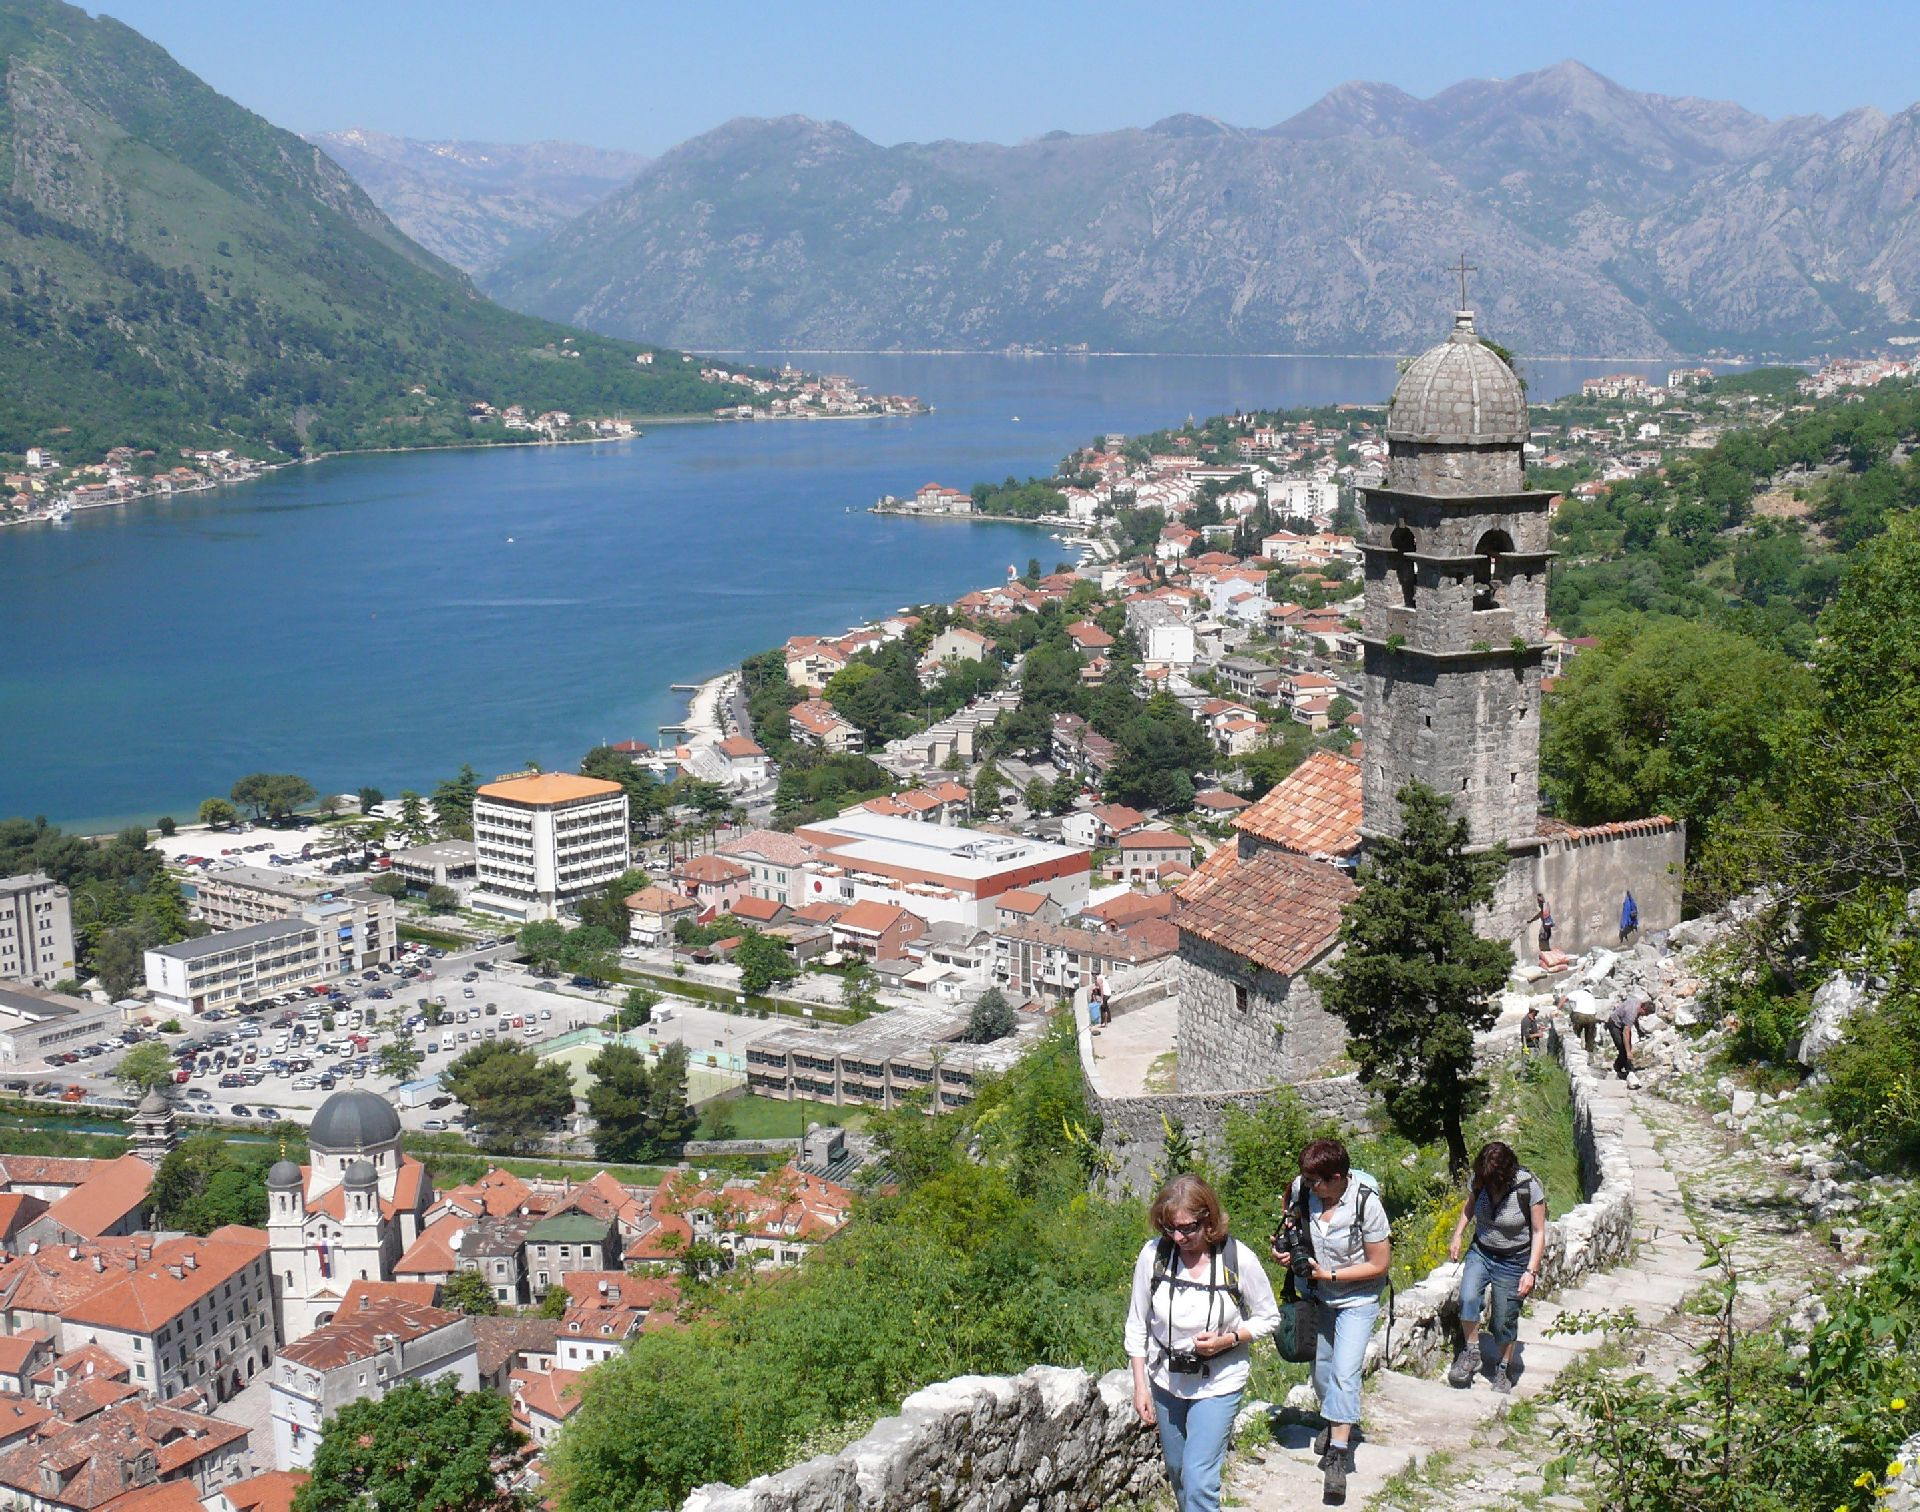 HIKING THE CITY WALLS OF KOTOR - Living in Montenegro :)